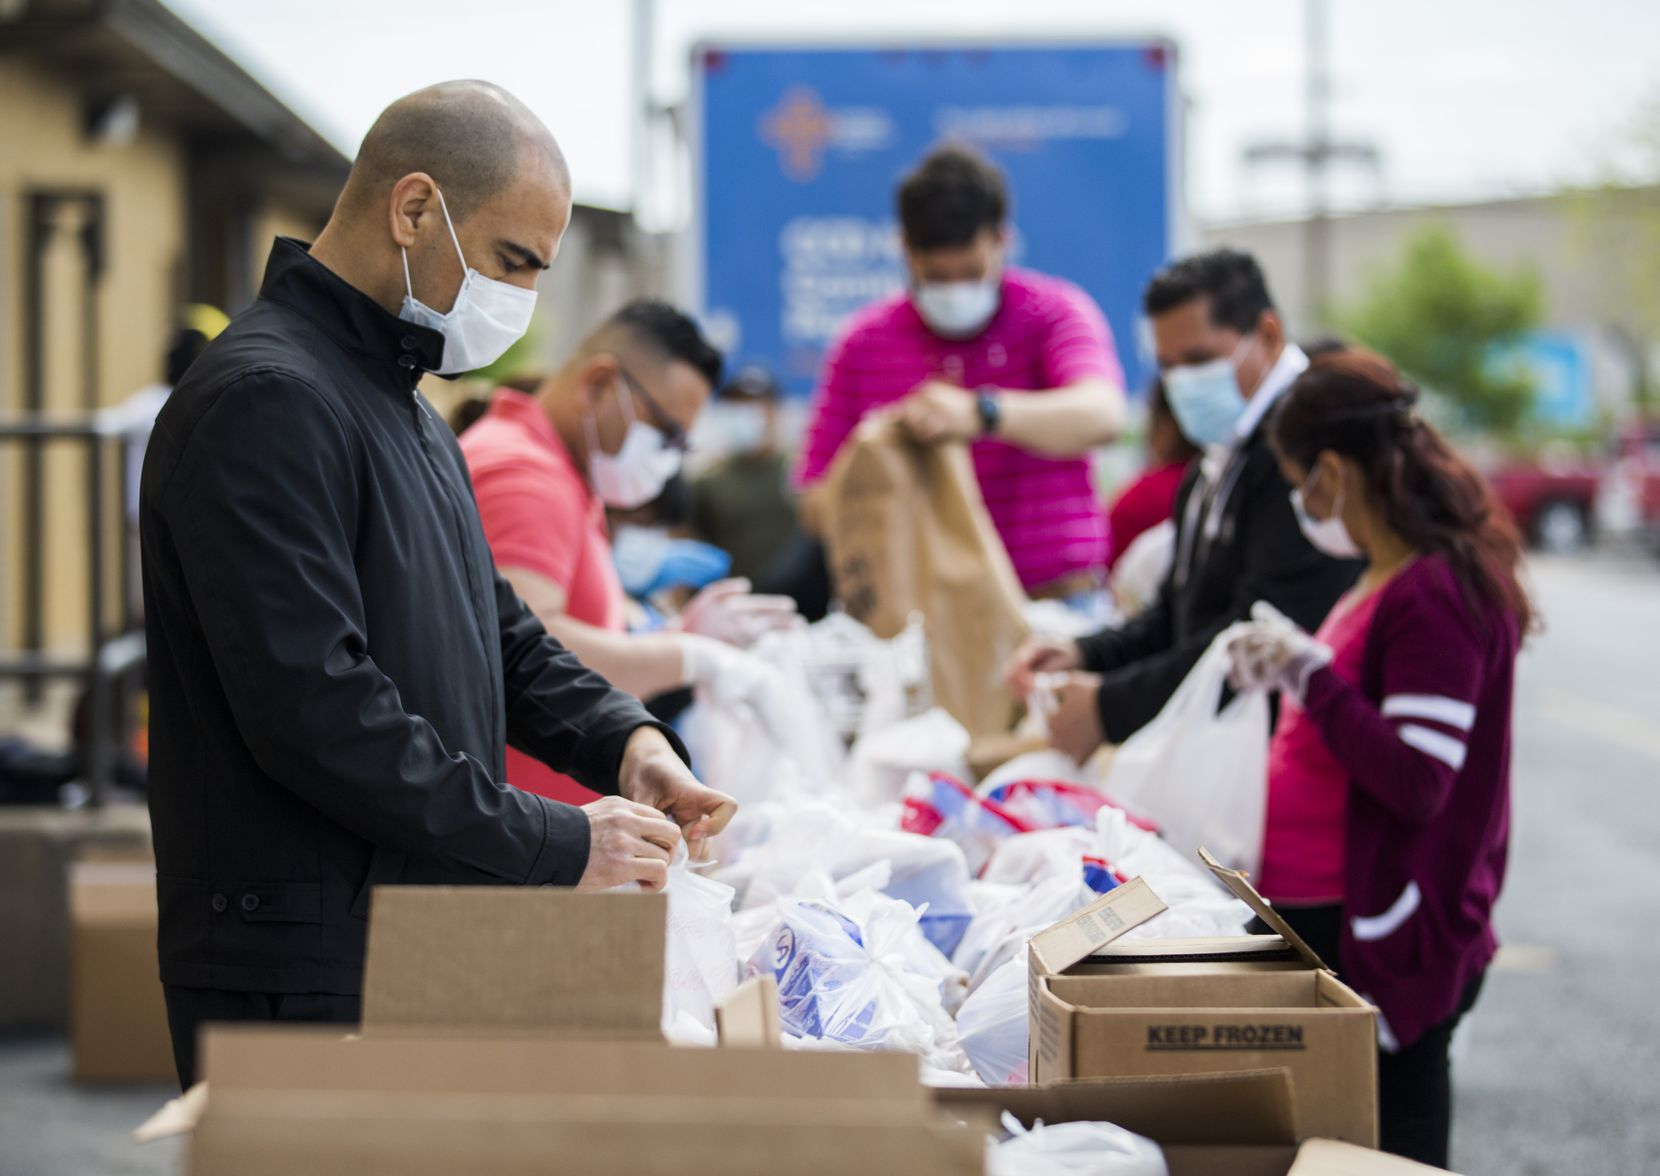 Rev. Jesus Belmontes (left) and other volunteers hand out food at San Juan Diego Catholic Church on Saturday, April 11, 2020 in Dallas.